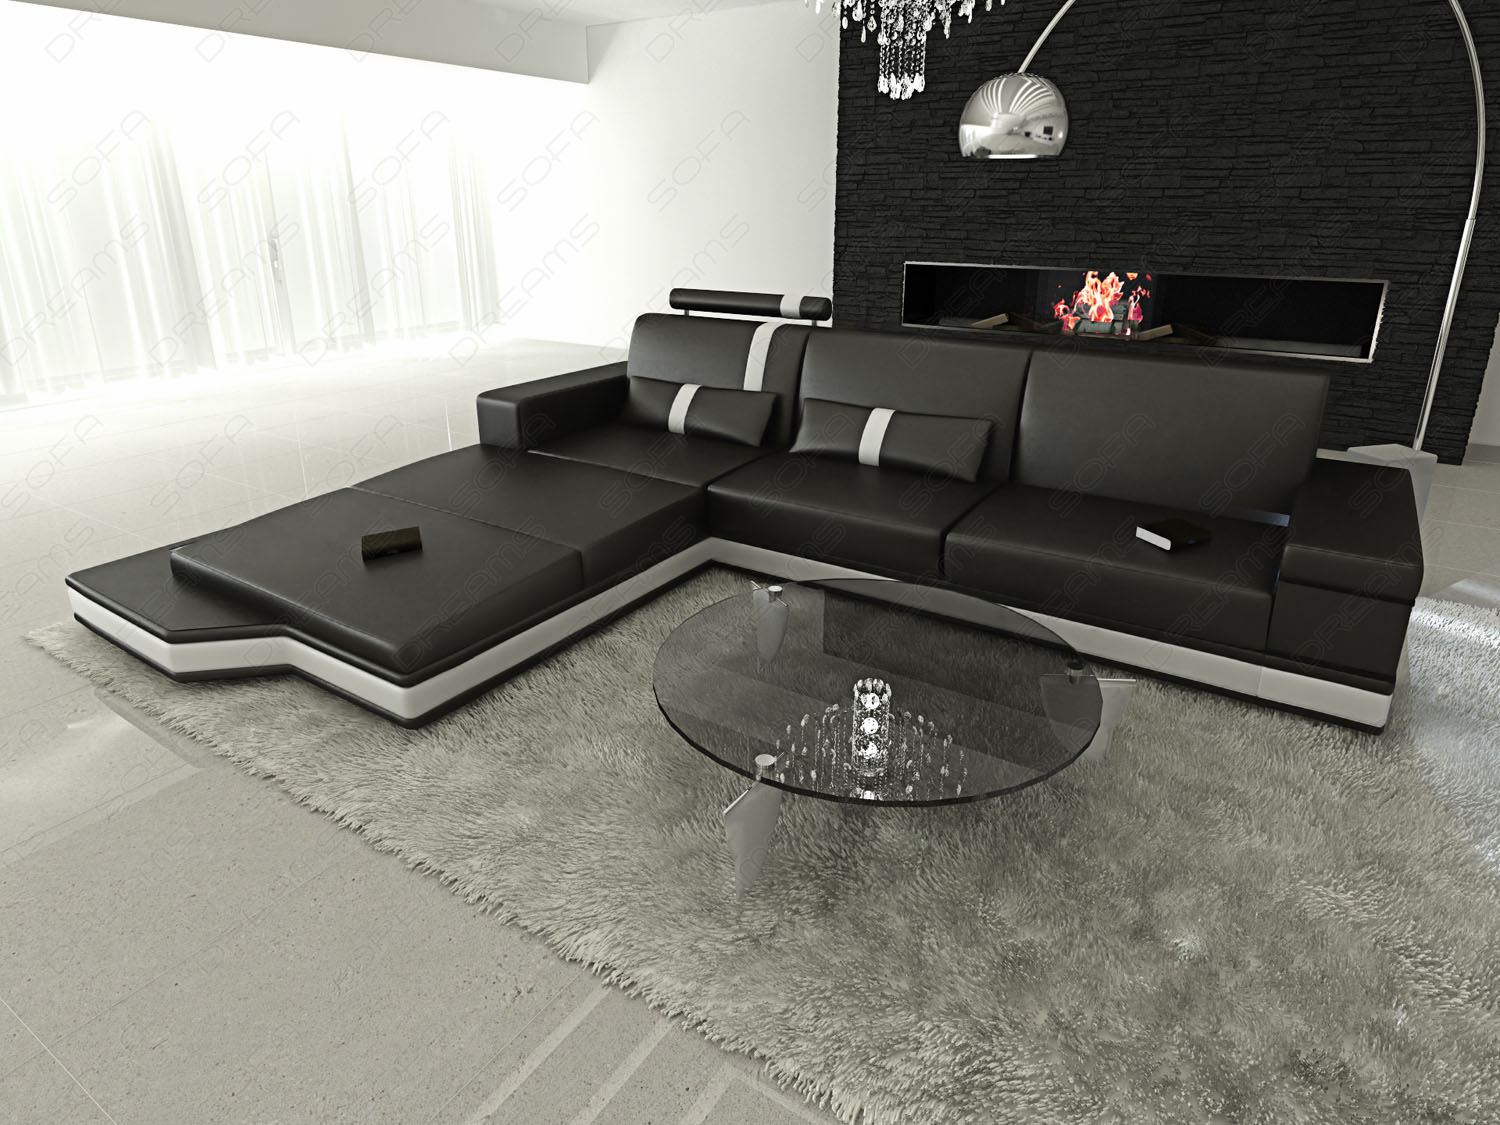 design l shaped sofa messana with lights black white ebay. Black Bedroom Furniture Sets. Home Design Ideas